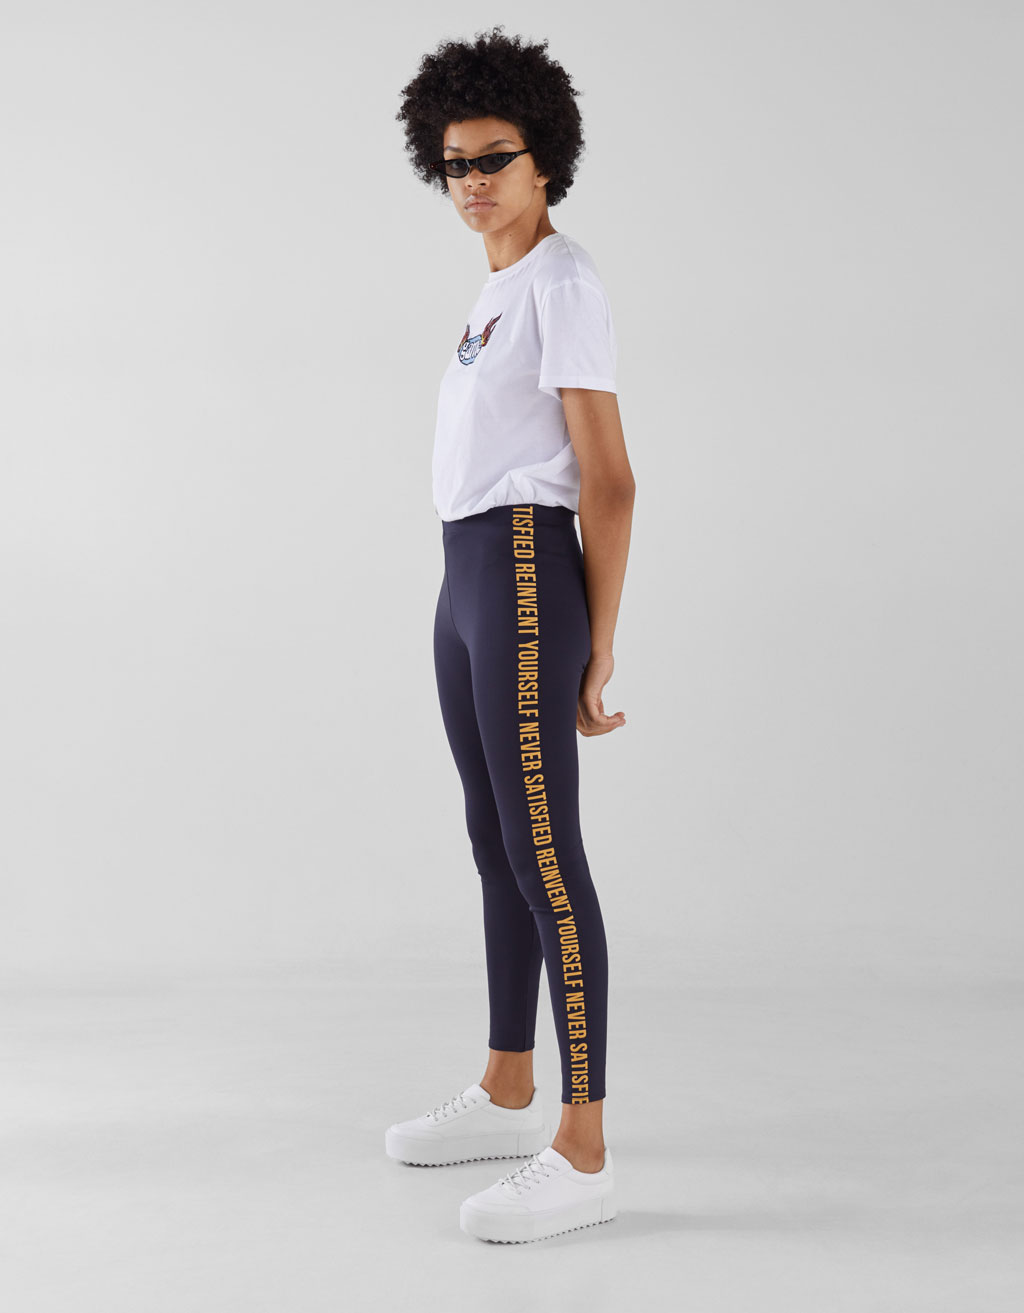 Leggings with slogan